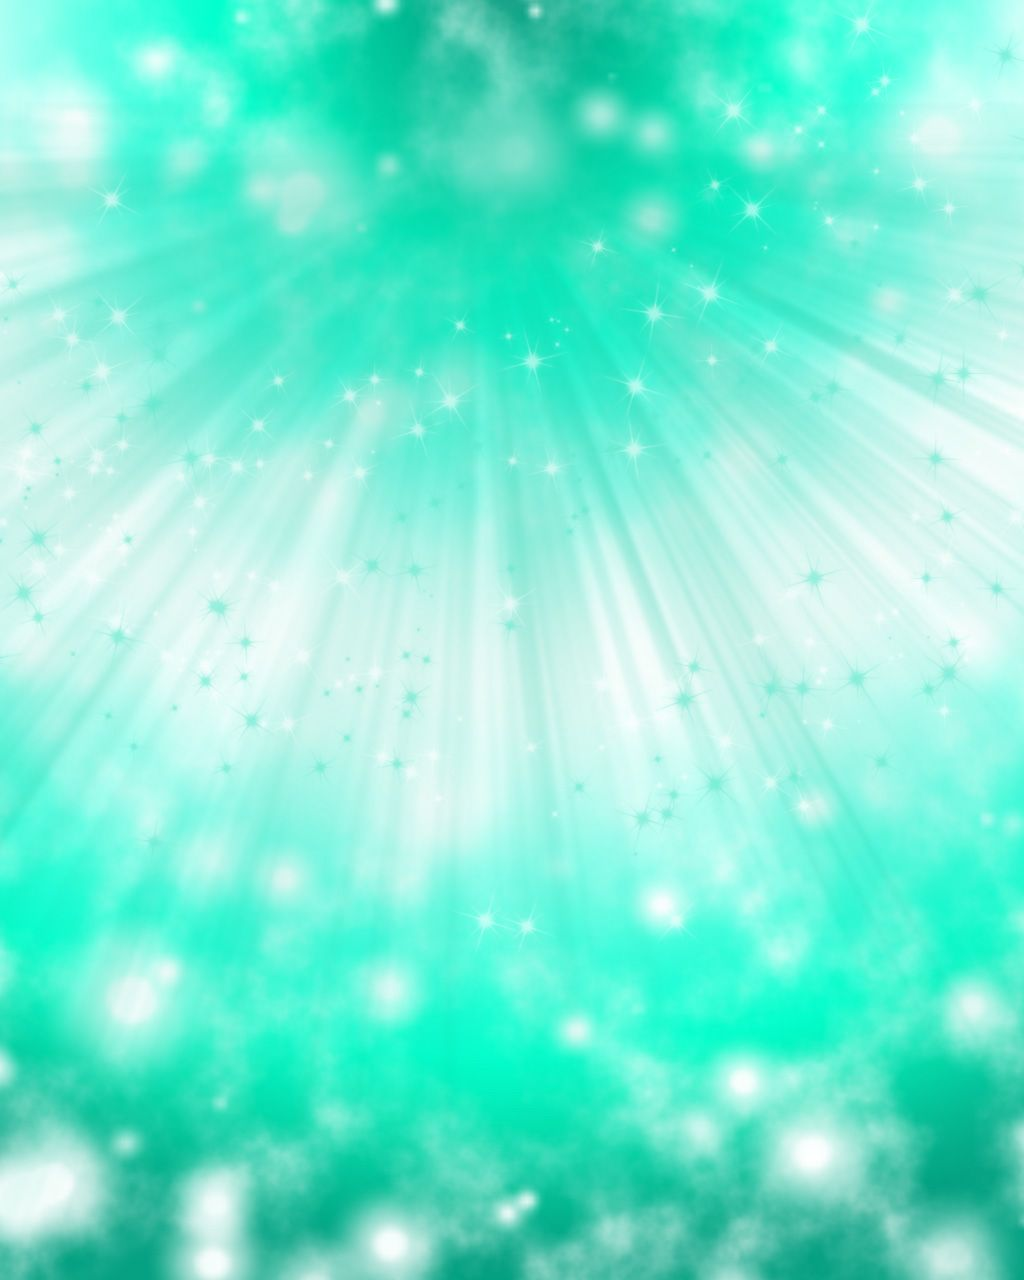 Sea Green Sparkles Background By YuniNaoki.deviantart.com